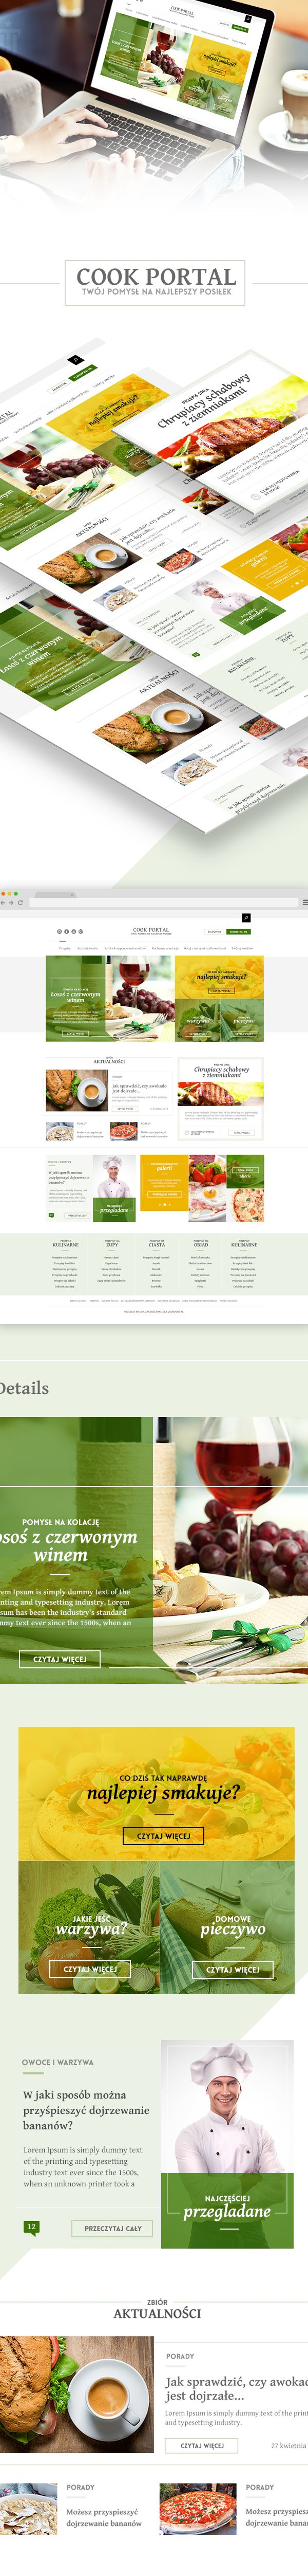 CookPortal by The Varo, via Behance